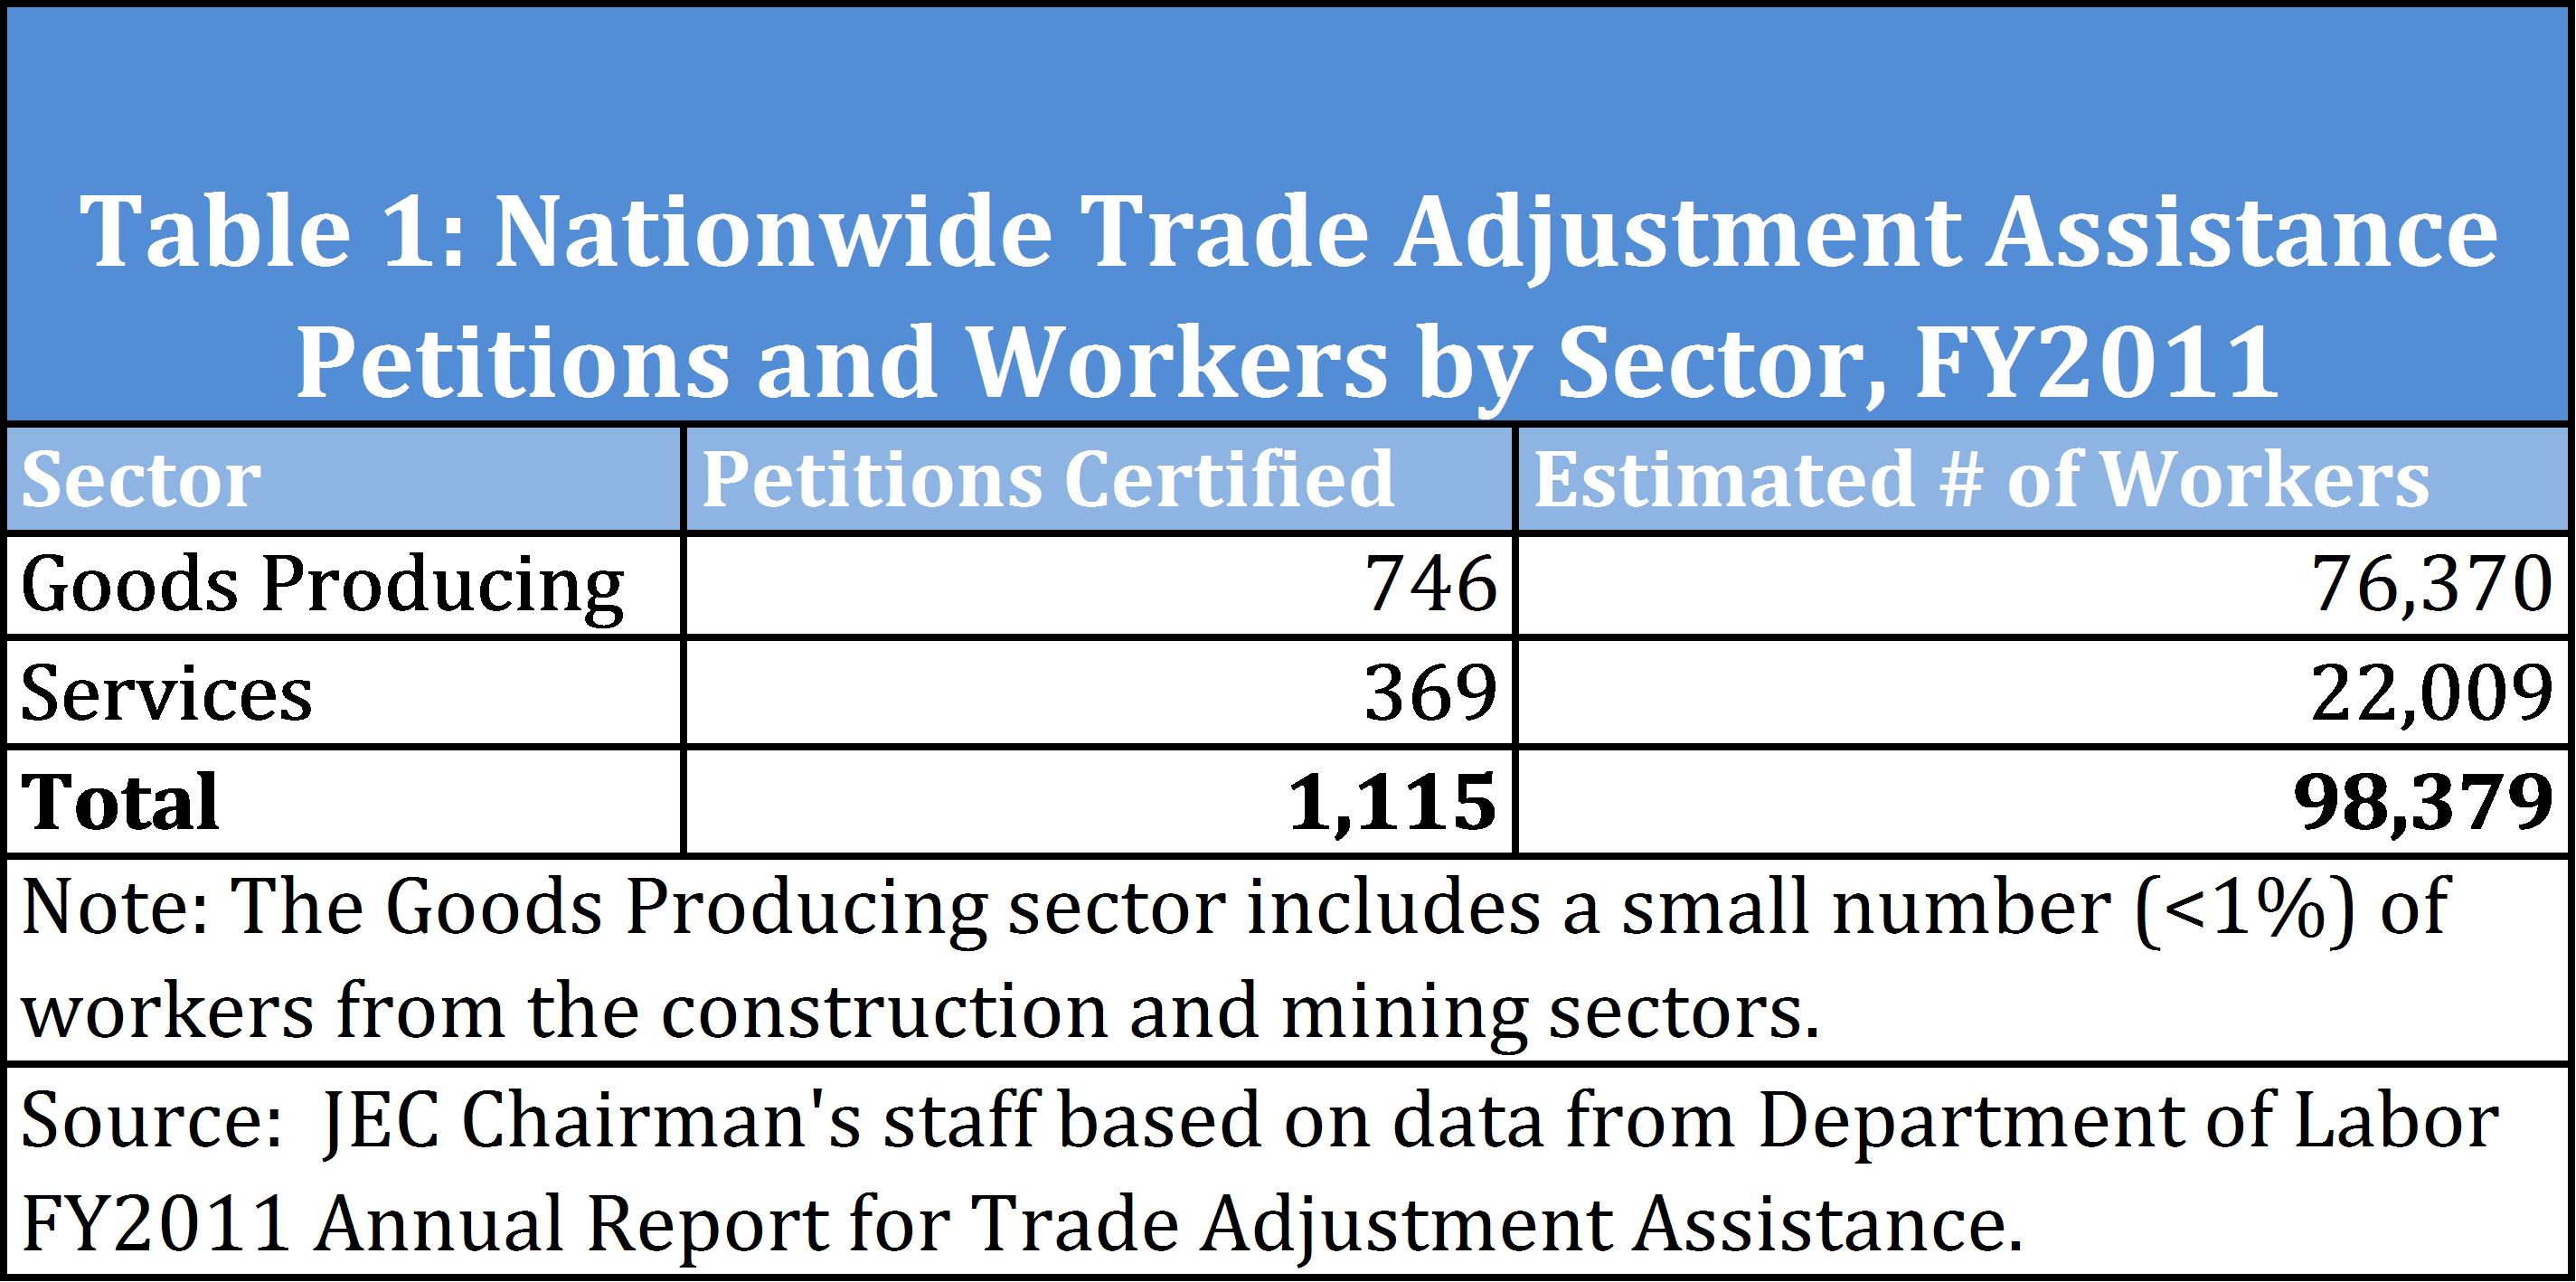 Nationwide TAA Petitions and Workers by Sector